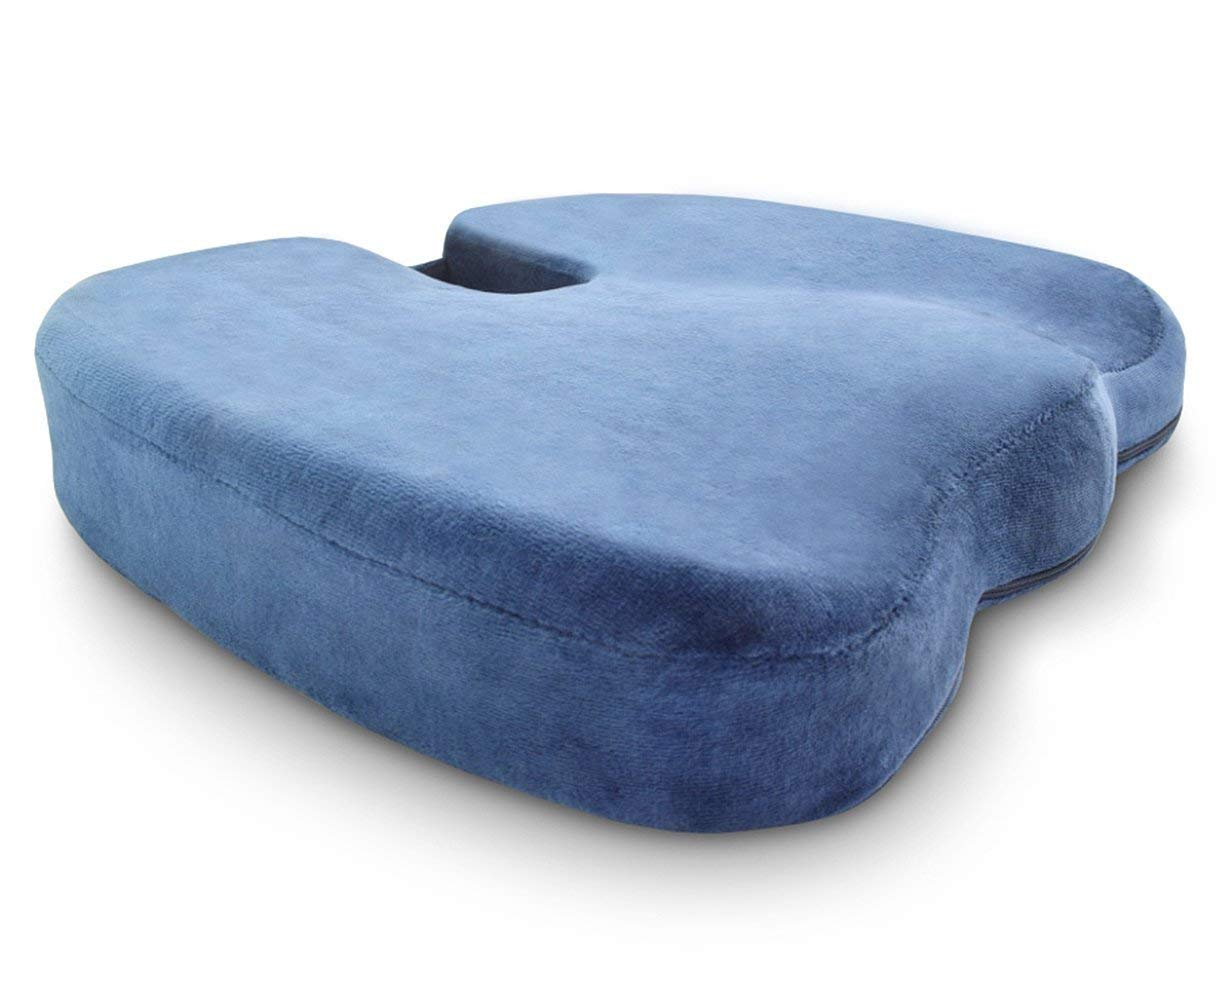 Crafty World Comfy Pro Memory Foam Seat Cushion - Provides Rapid Relief from Back, Tailbone, Hip & Sciatica Pain - Ideal for Home, Office, Car - Blue